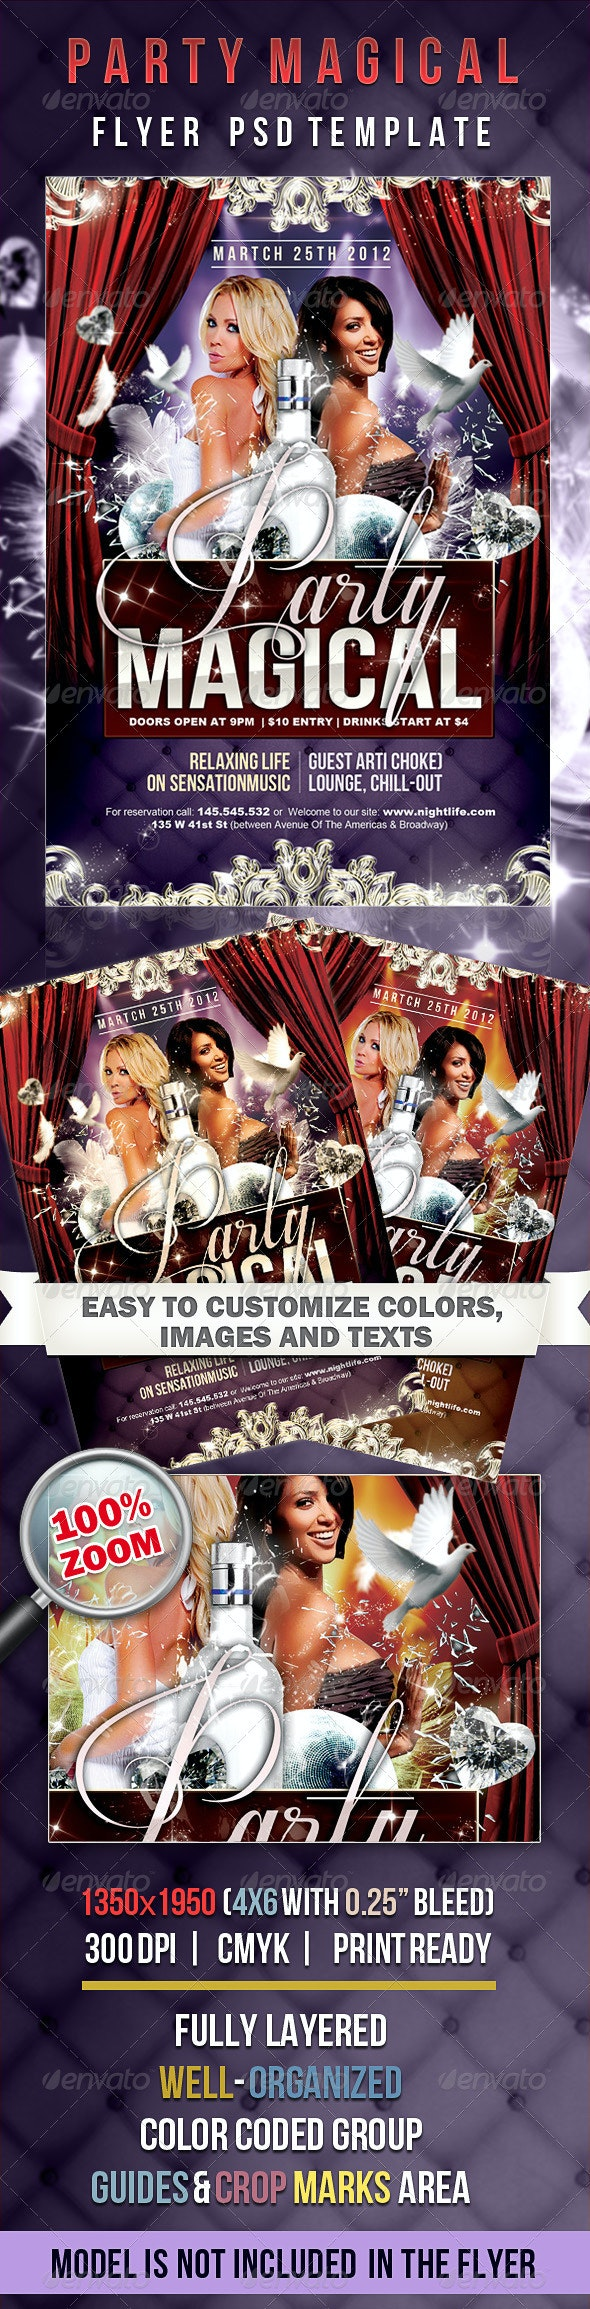 Party Magical - Flyer PSD Template - Events Flyers